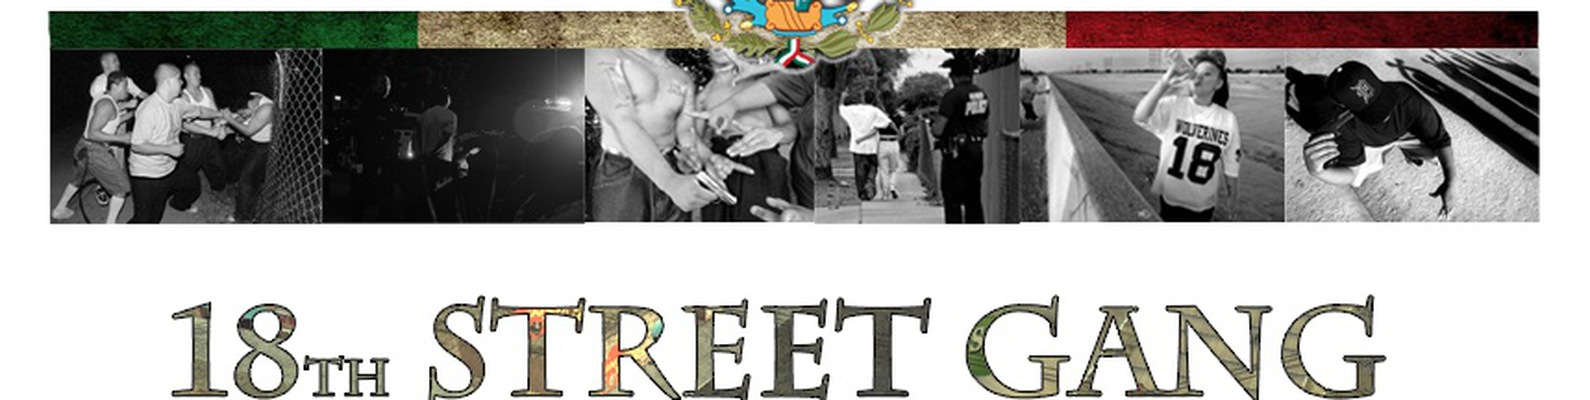 18th street gang In march this year el salvador's most violent gangs - the mara salvatrucha and the 18th street gang - agreed a truce and the country's murder rate has since plummeted, but can the peace last.